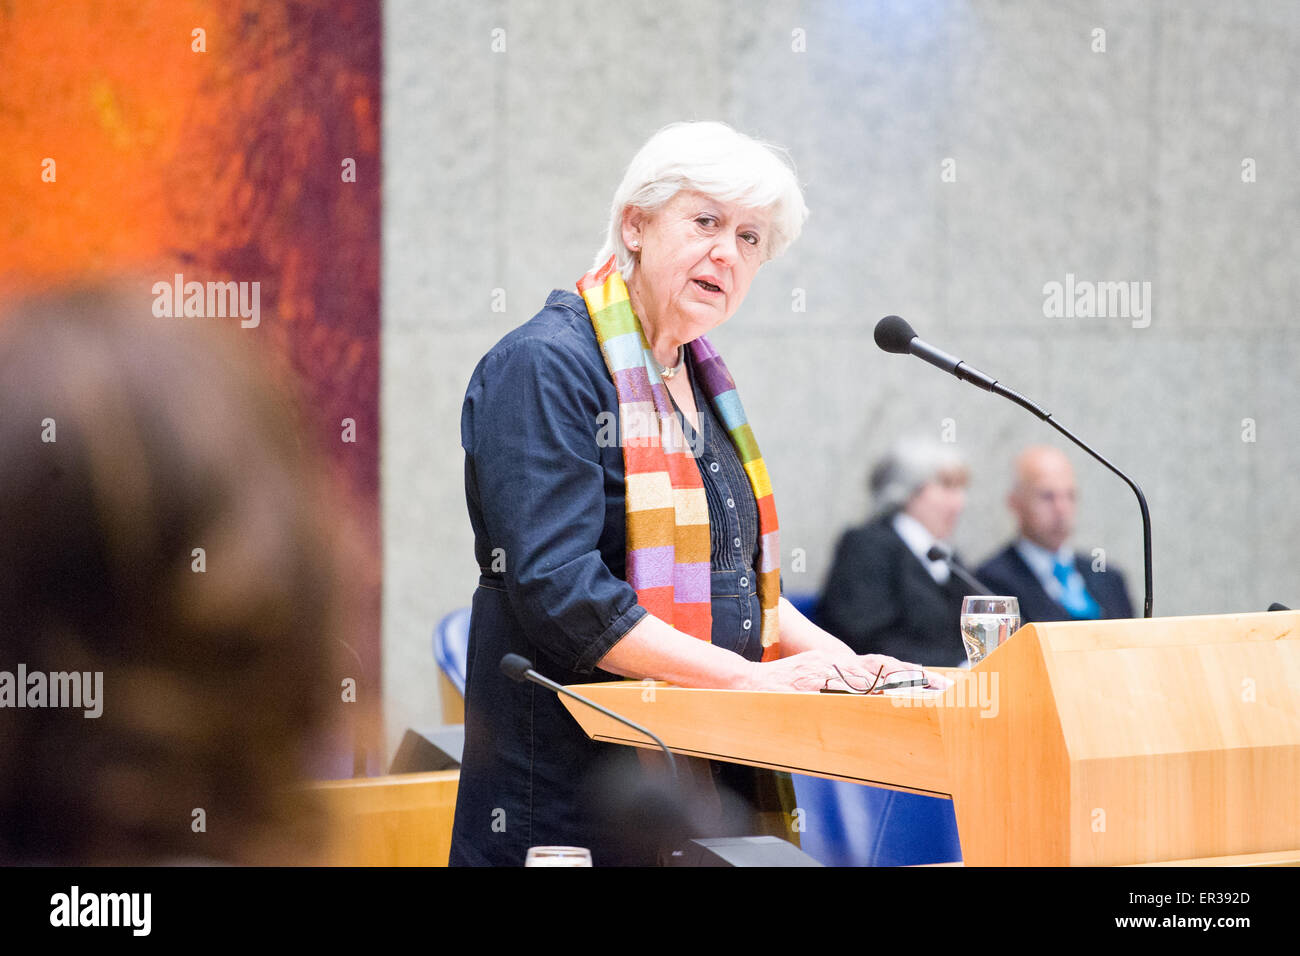 Saskia Stuiveling, president of the Court of Audits is seen presenting the yearly financial accounting report to Stock Photo